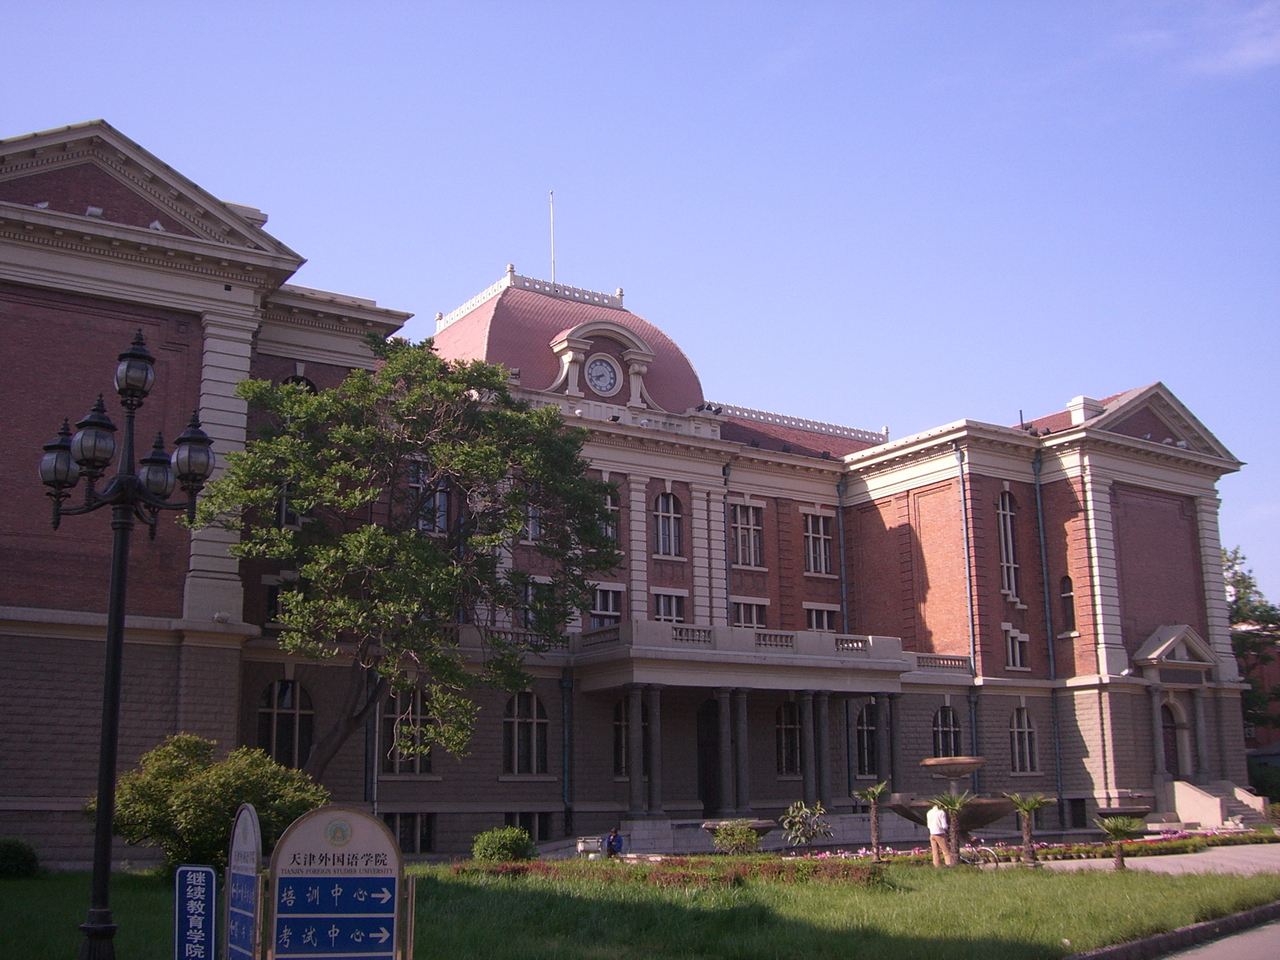 天津外国语学院 (Tianjin Foreign Studies University), Tianjin Shi, Tianjin, China, May 13, 2006 | © Courtesy of Jinjian Liang/Flickr.